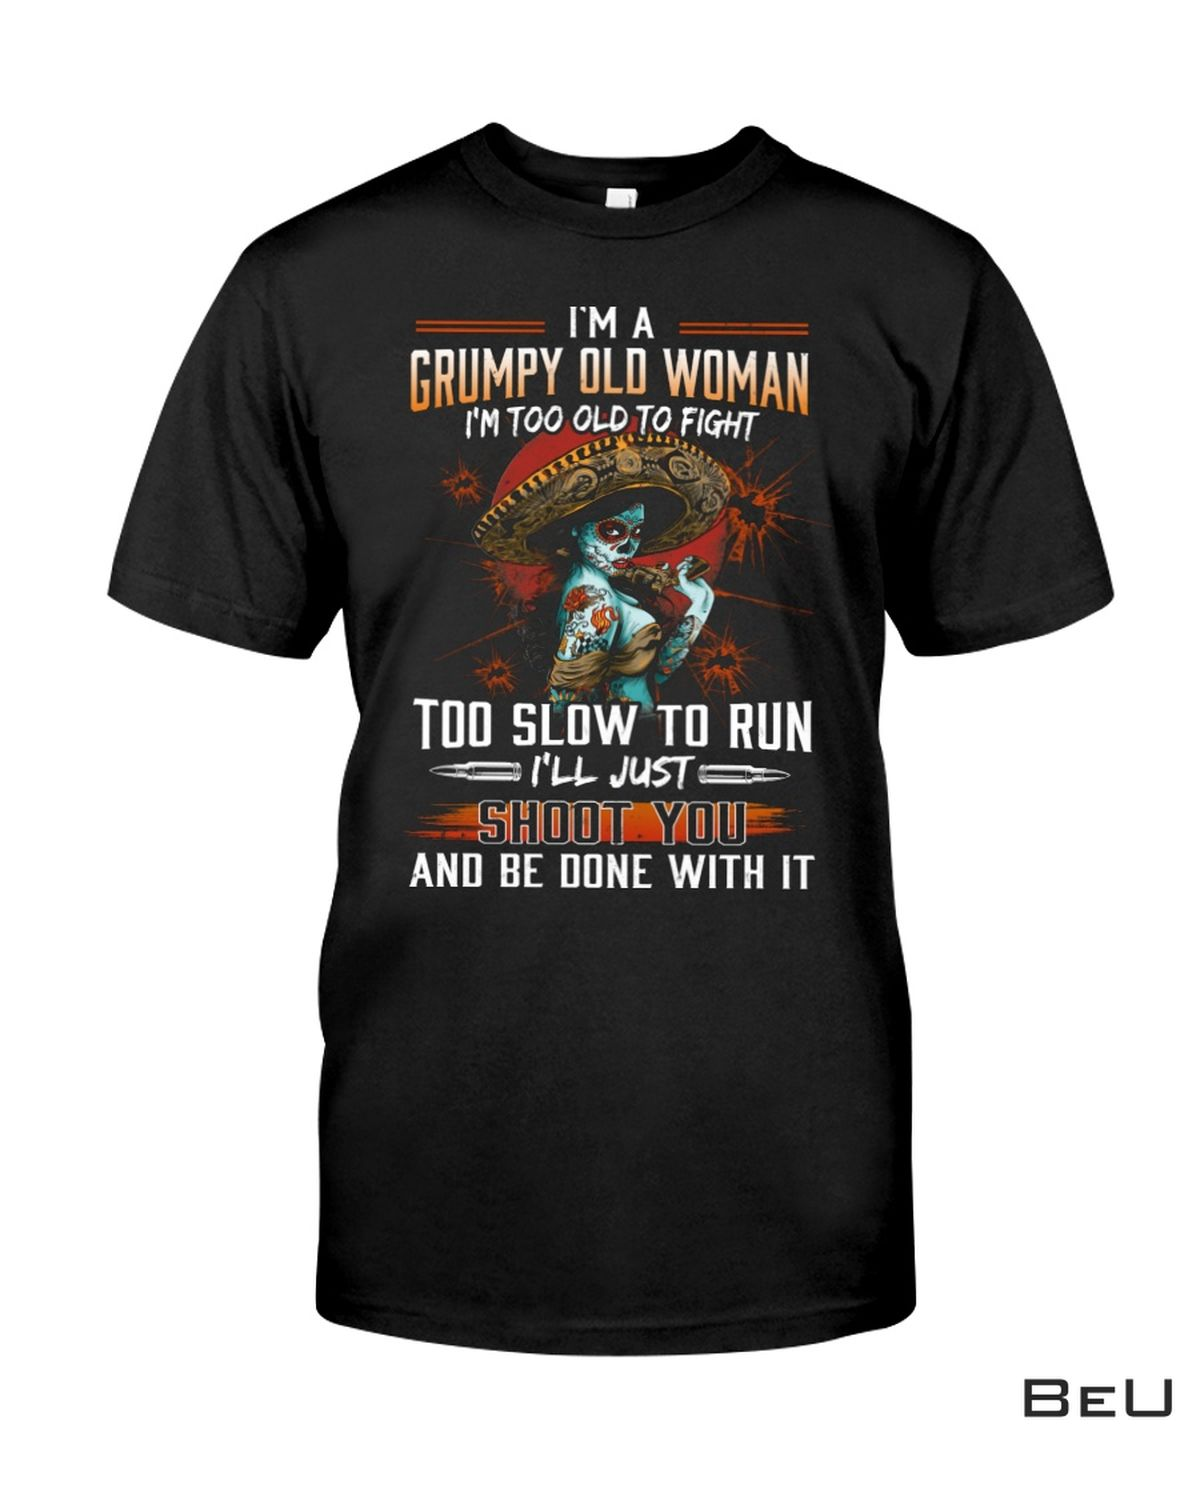 I'm Grumpy Old Woman I'm Too Old To Fight Shirt, hoodie, tank top